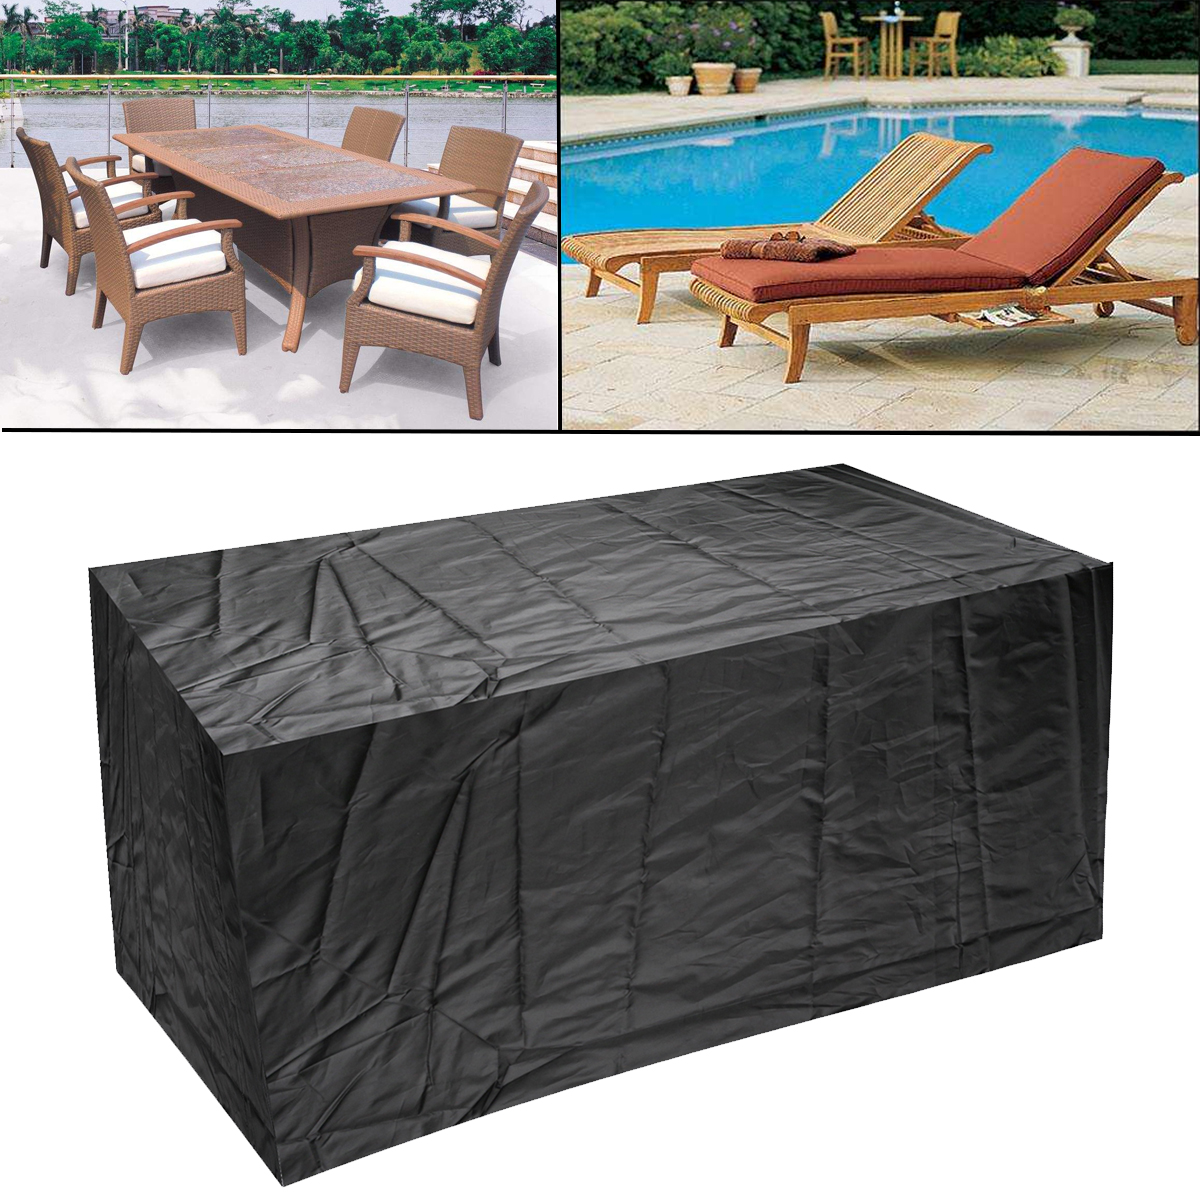 Best Price On Furniture: Best Price Outdoor Garden Furniture Rain Cover Waterproof